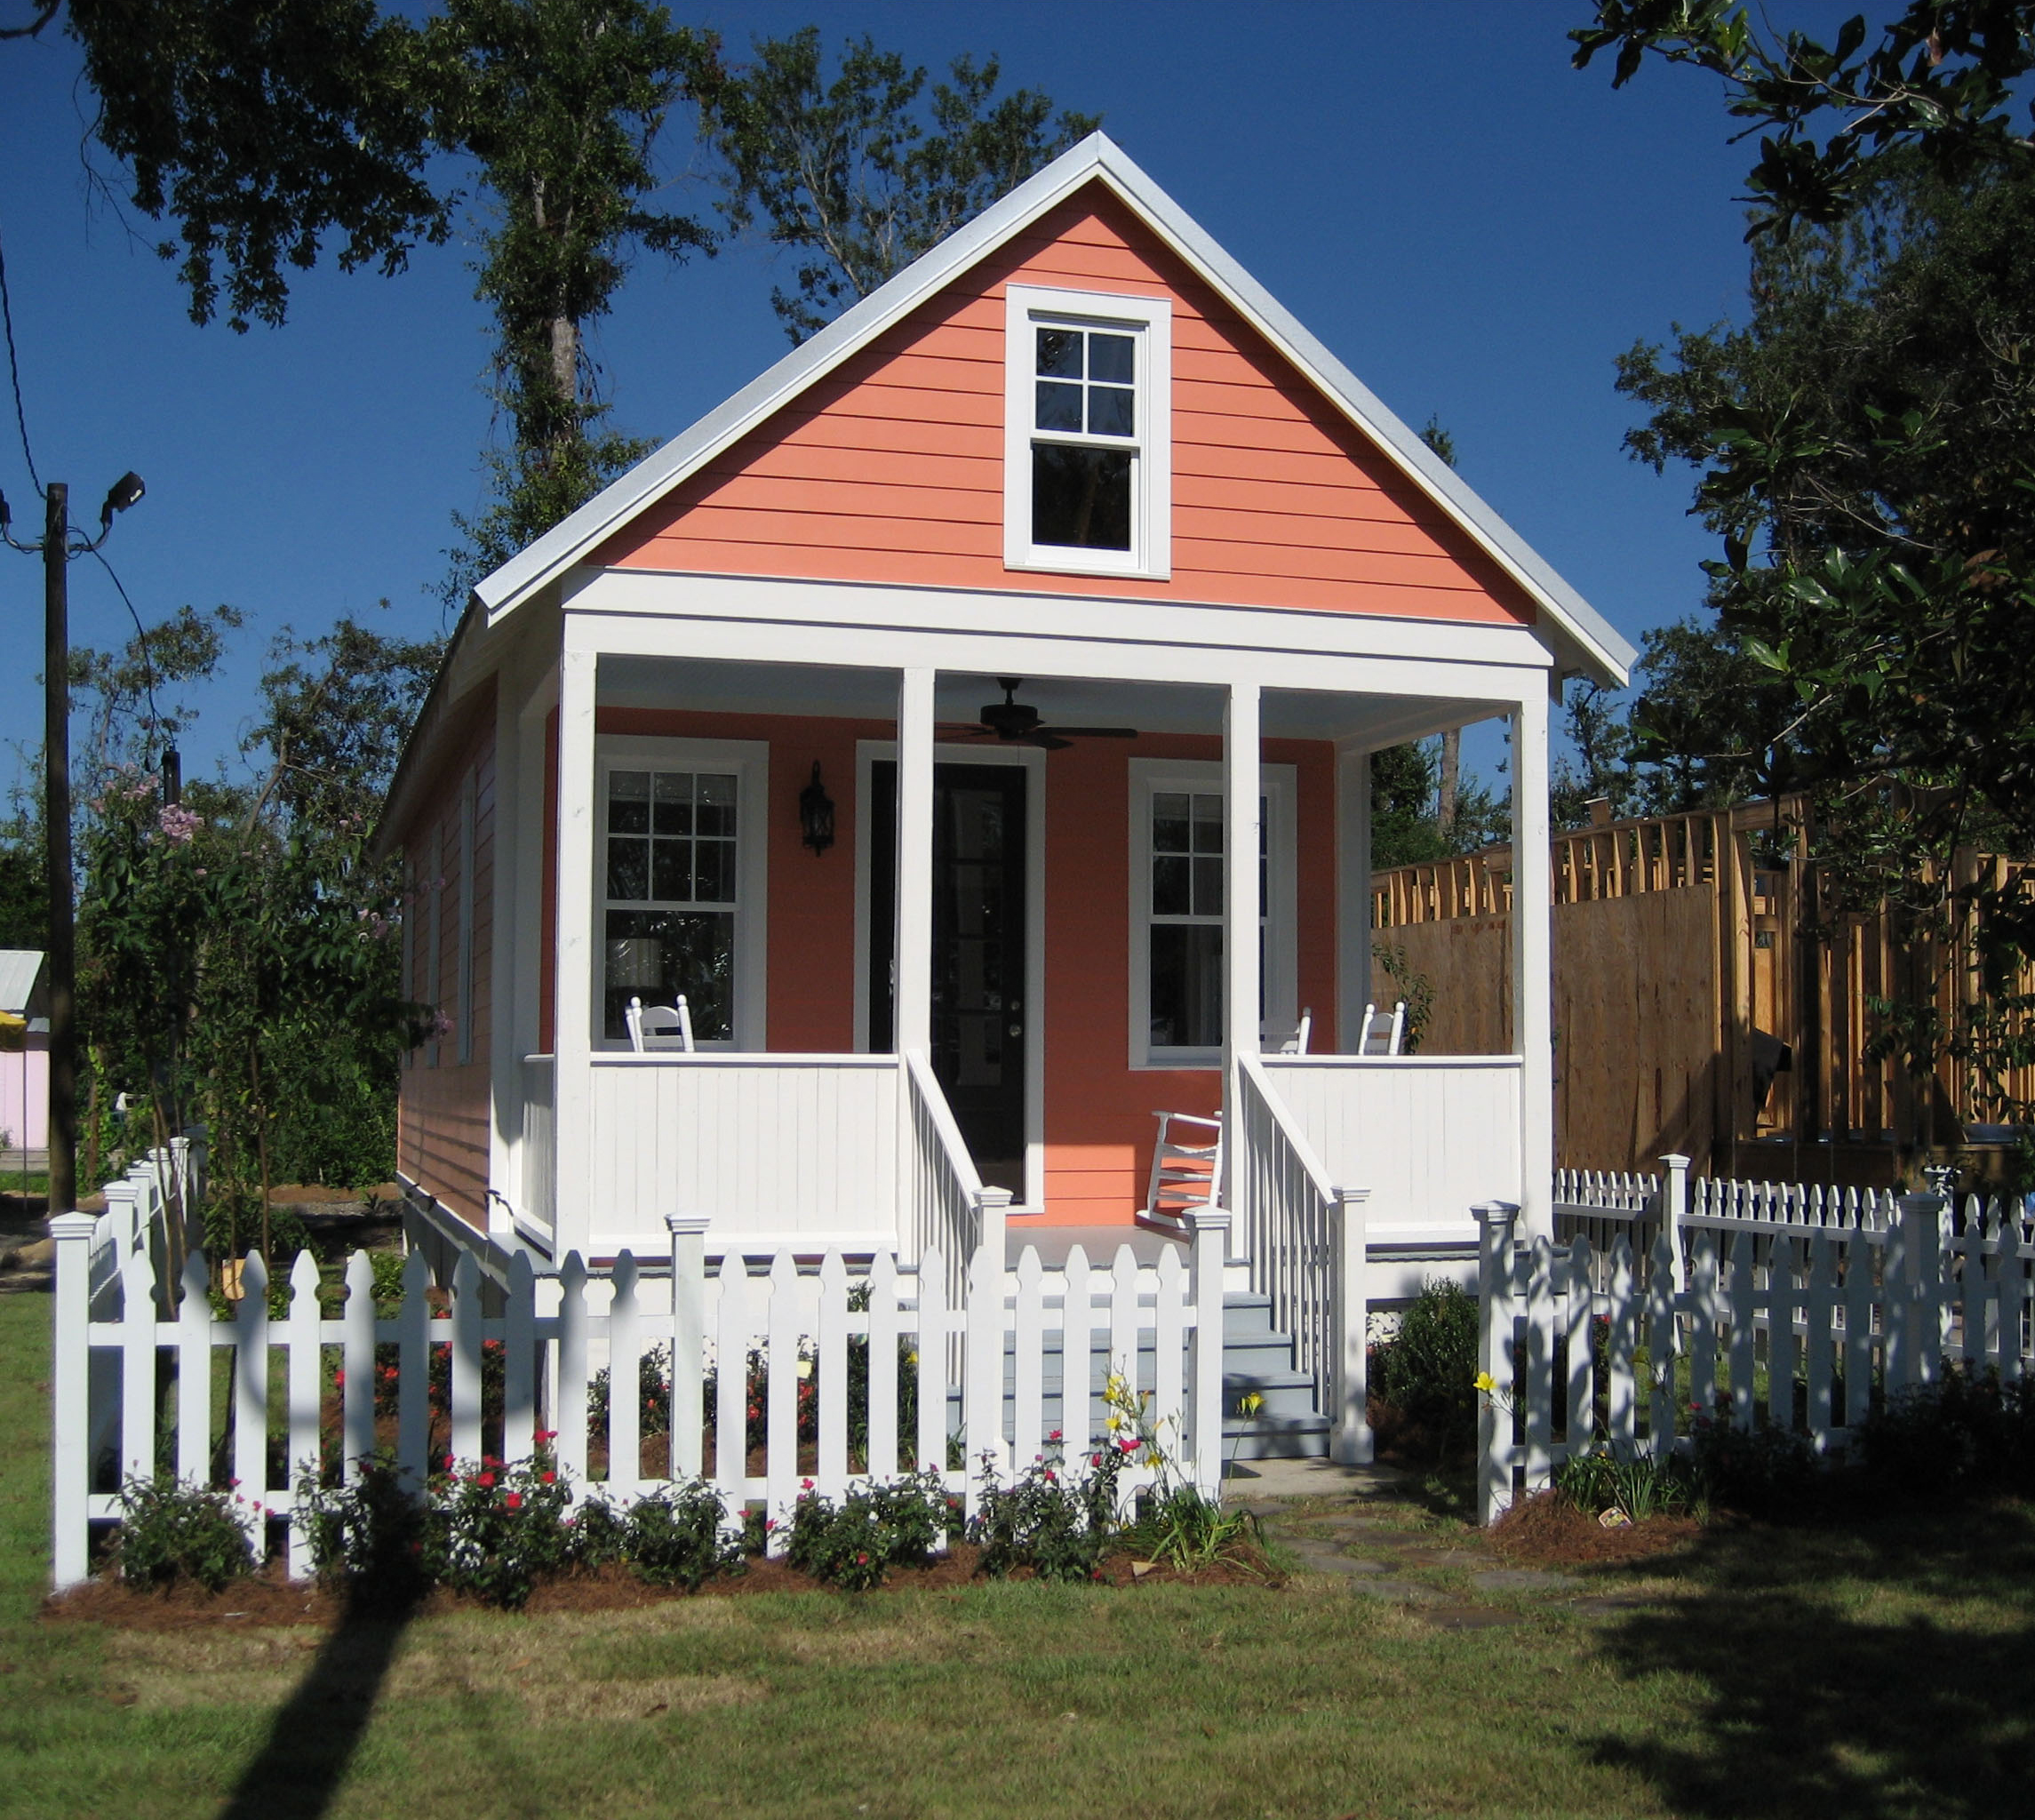 Lowe's Katrina Cottage Kit: 544 sf 2 bedroom permanent house.